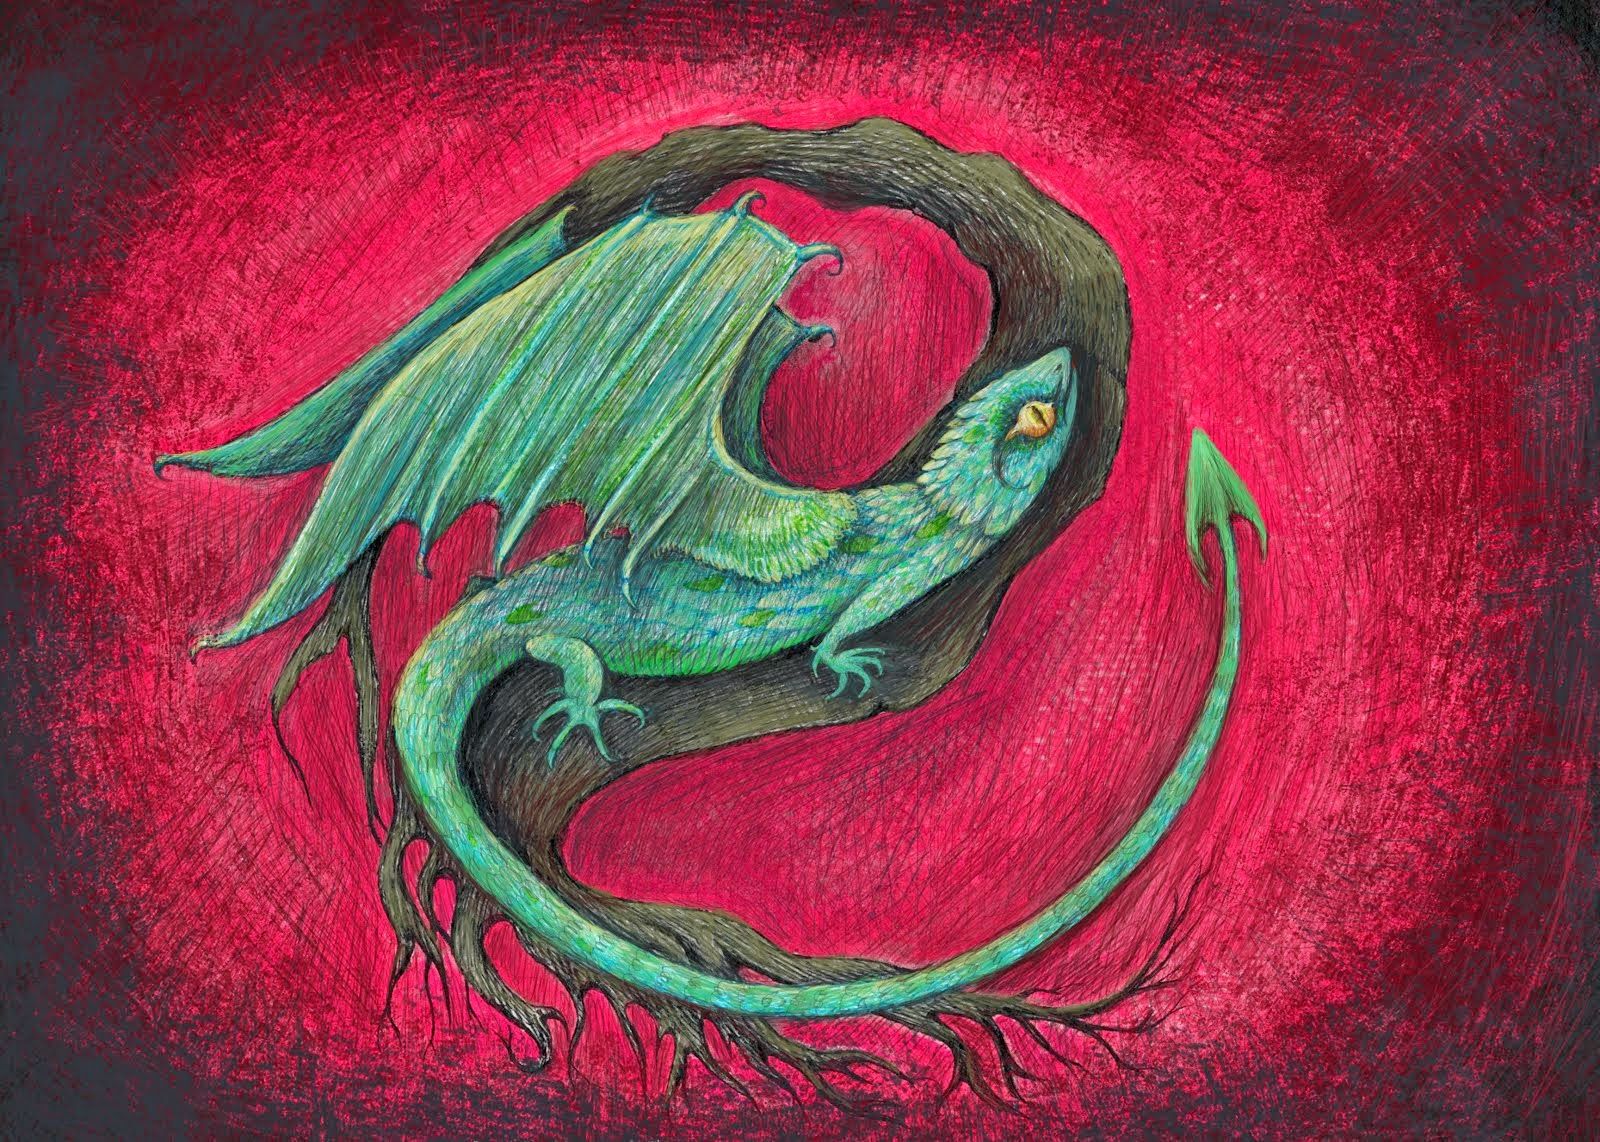 baby dragon art by melanie dann